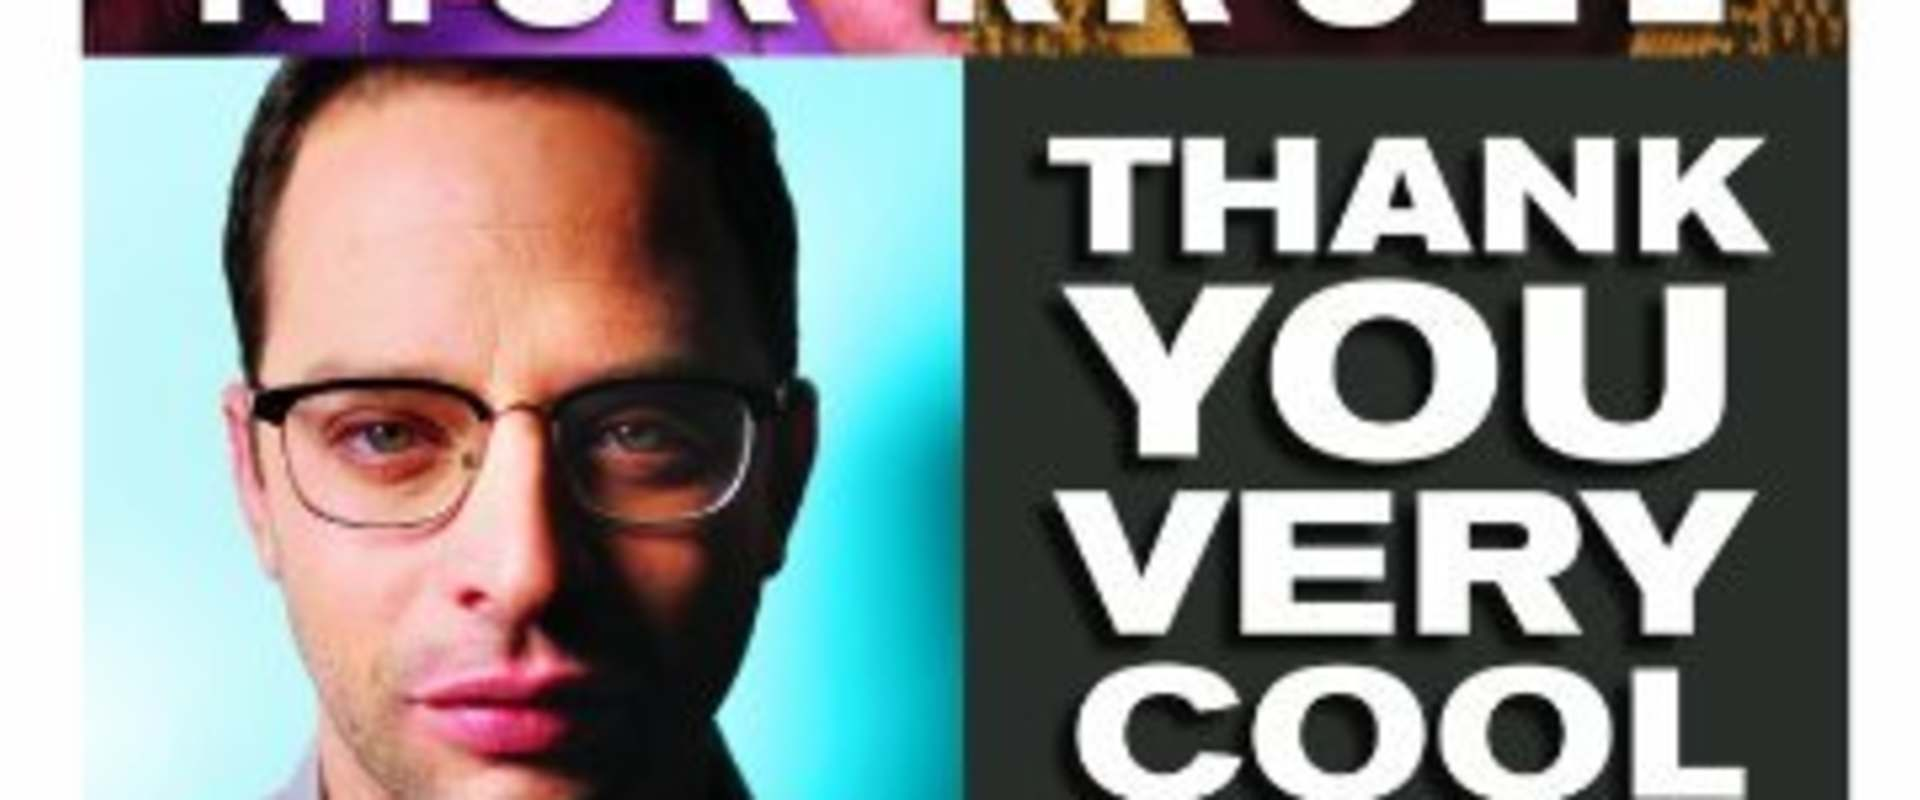 Nick Kroll: Thank You Very Cool background 1